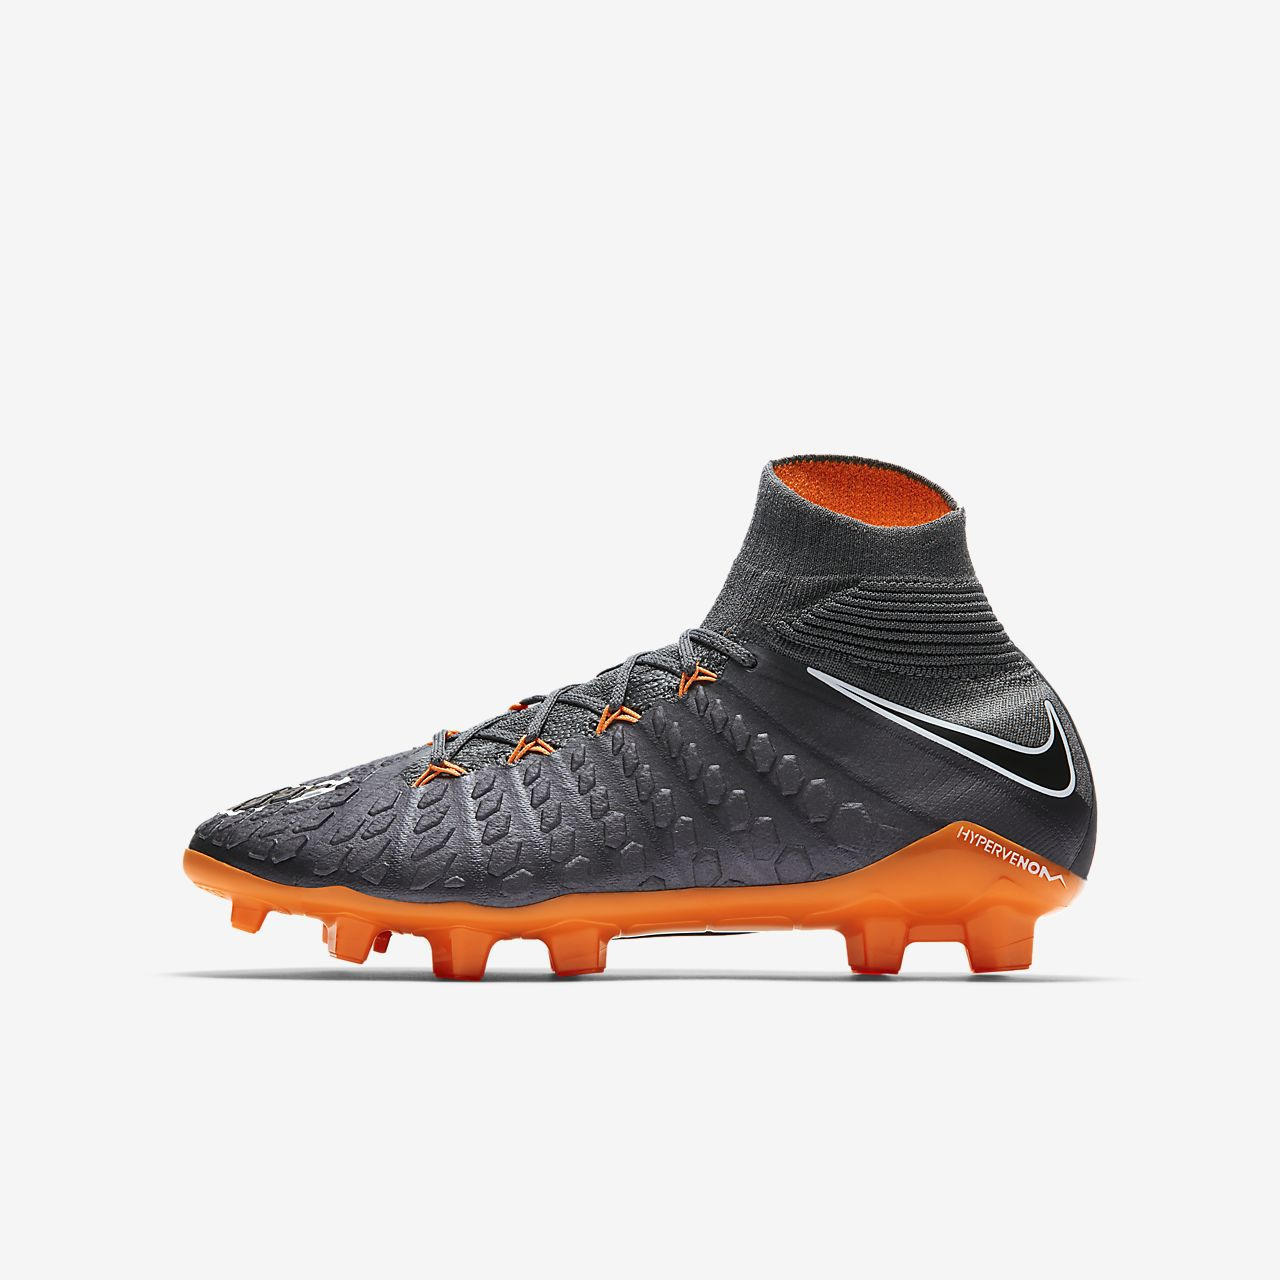 ... Nike Jr. Hypervenom Phantom III Elite Dynamic Fit FG Little/Big Kids'  Firm